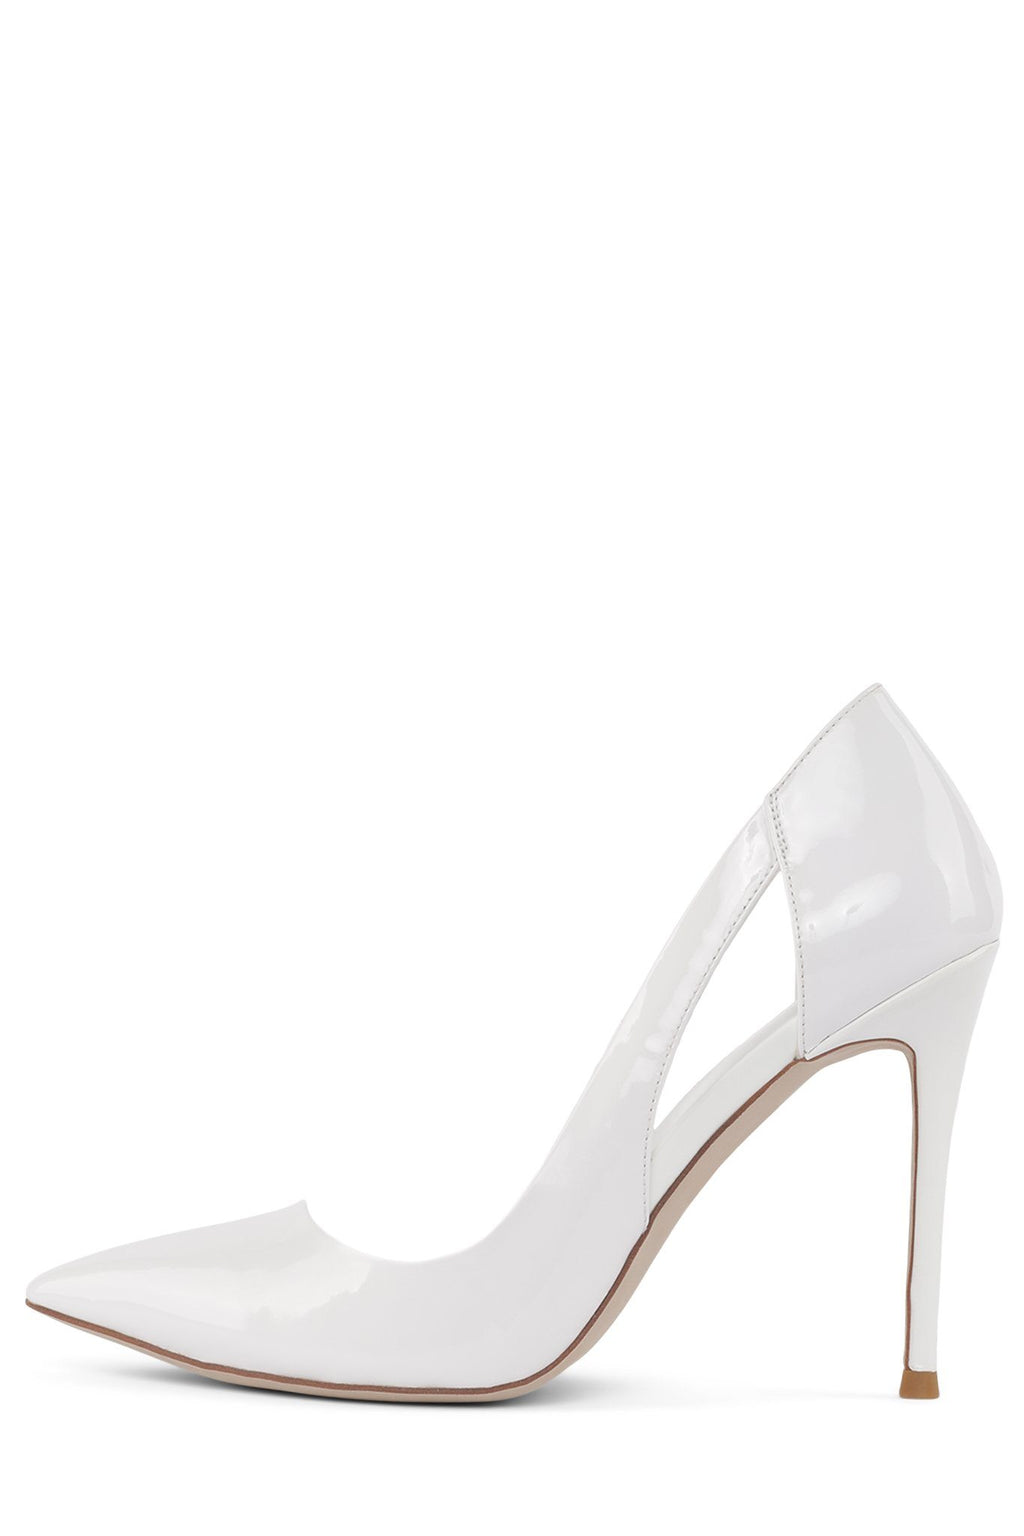 ALURE Pump Jeffrey Campbell White Patent 6